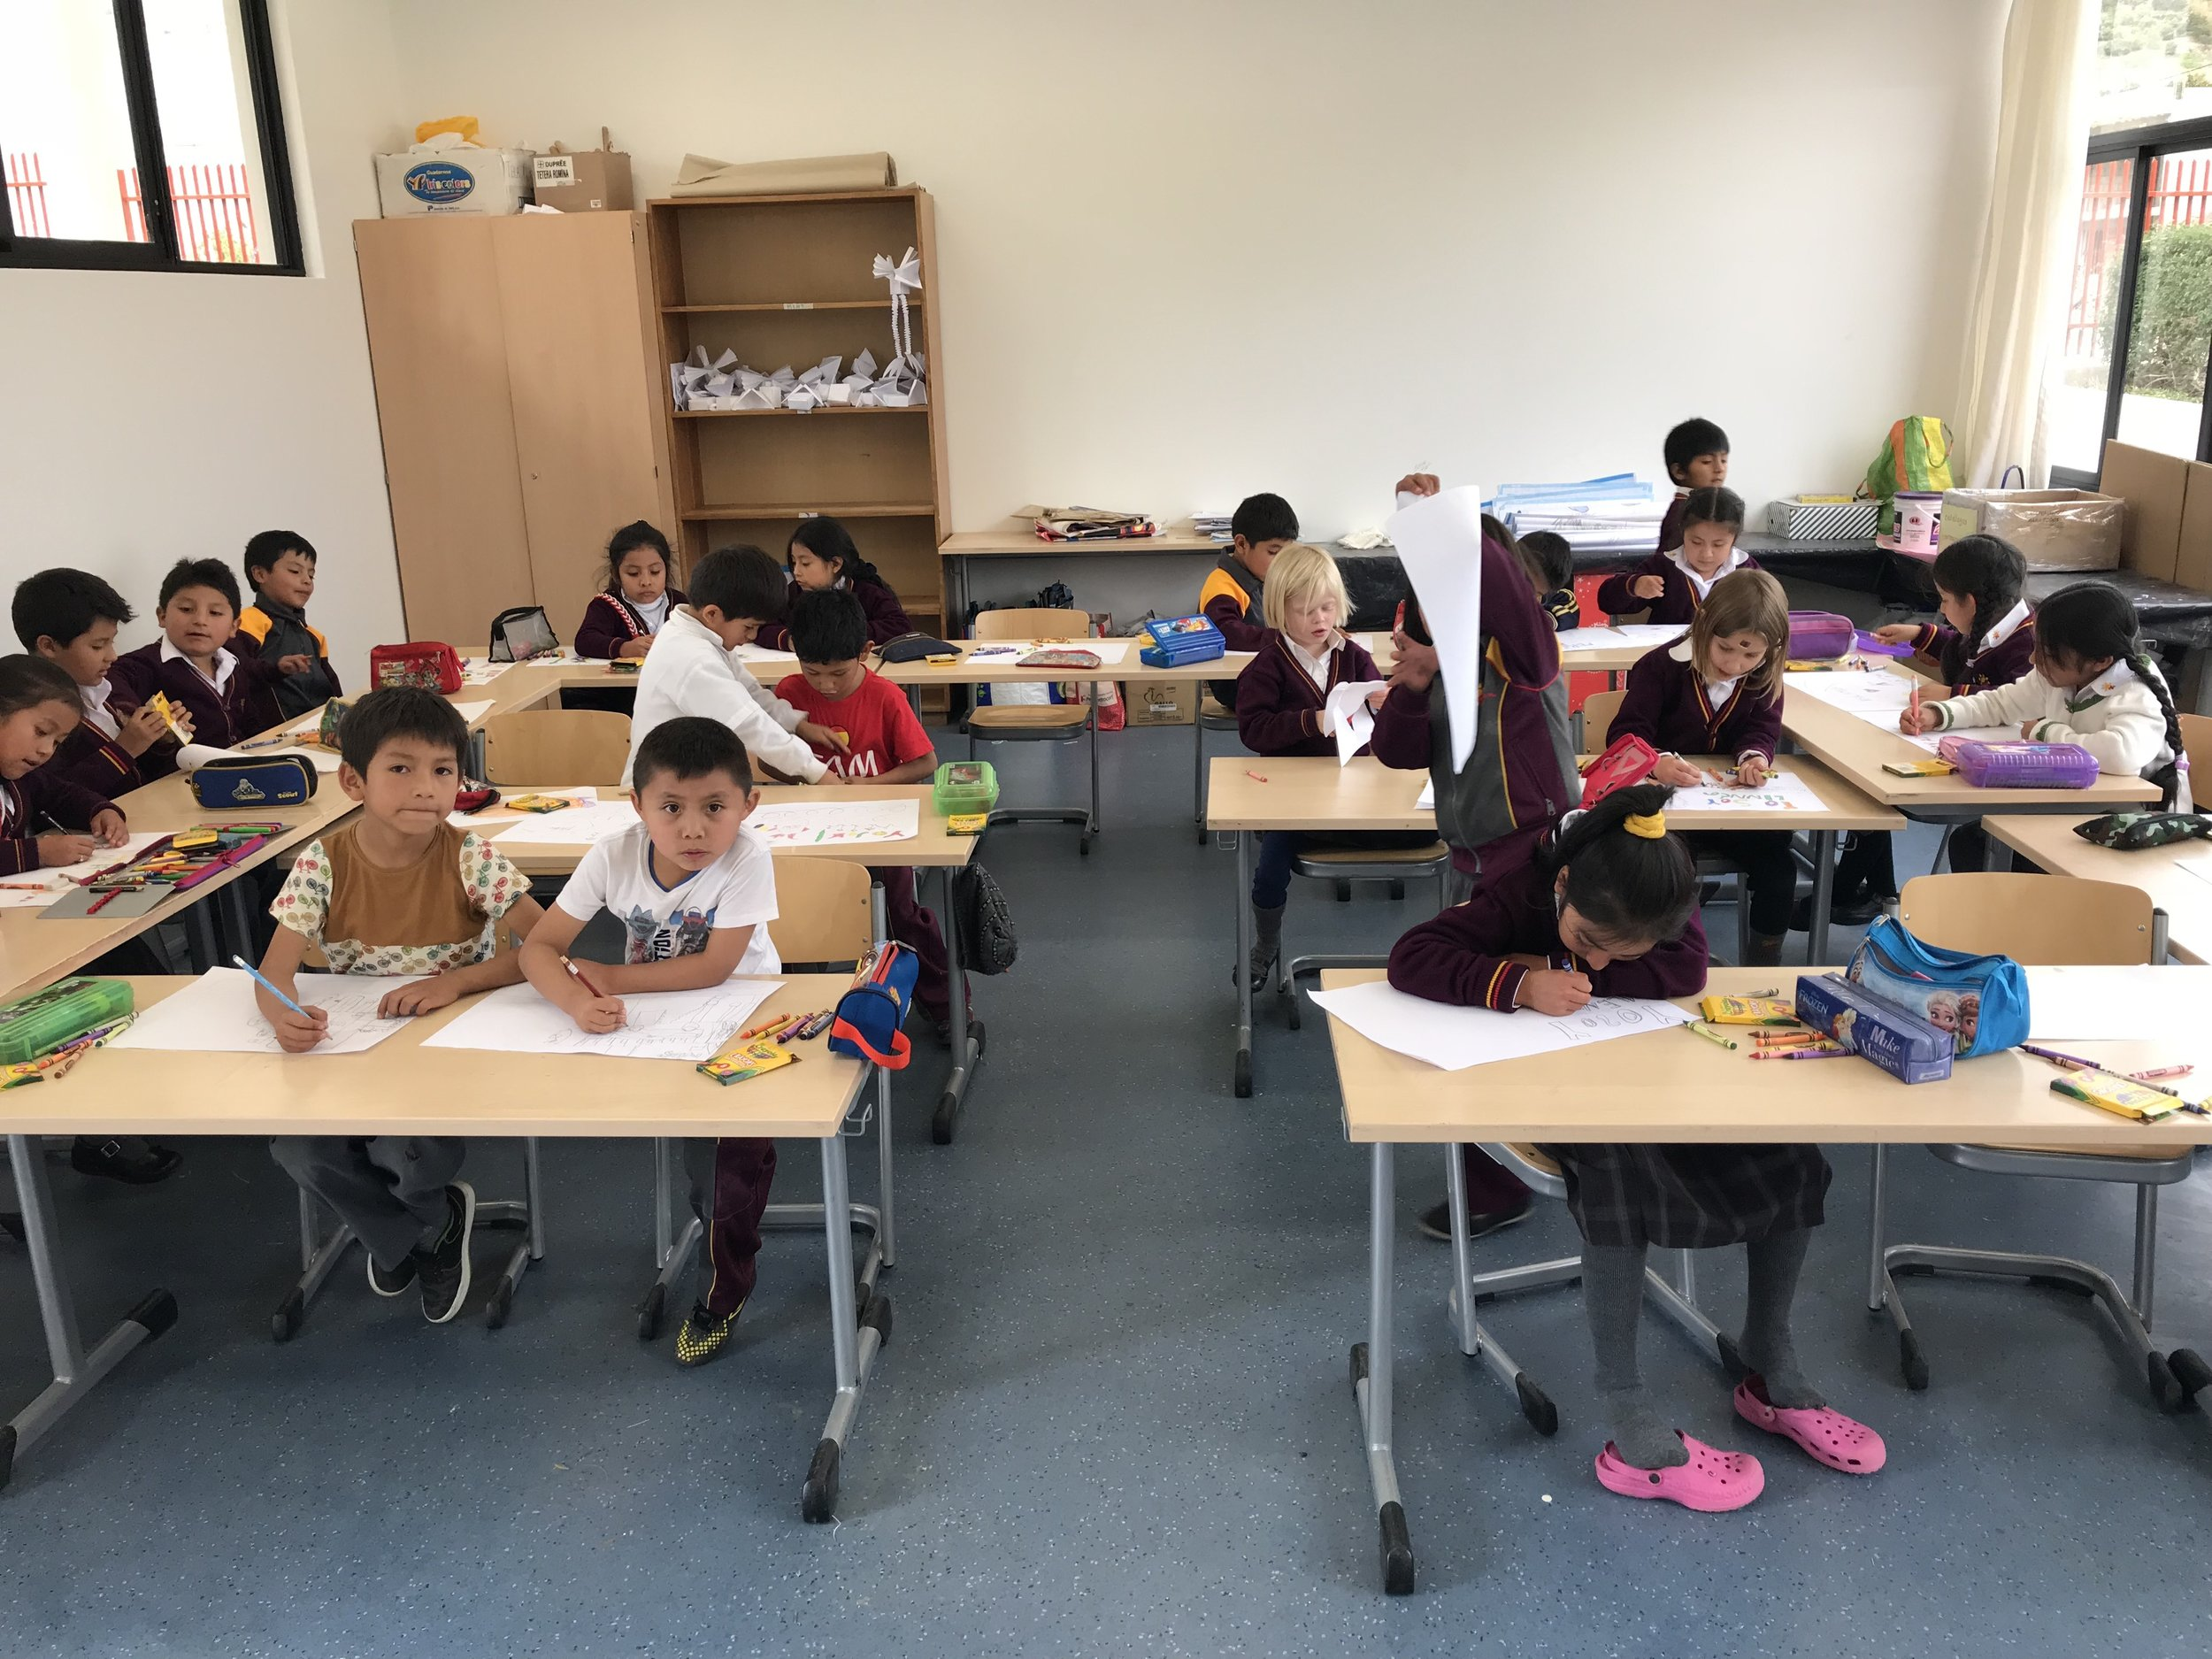 """My first grade class again, working on """"Yo Soy"""" Project (I AM Project)."""